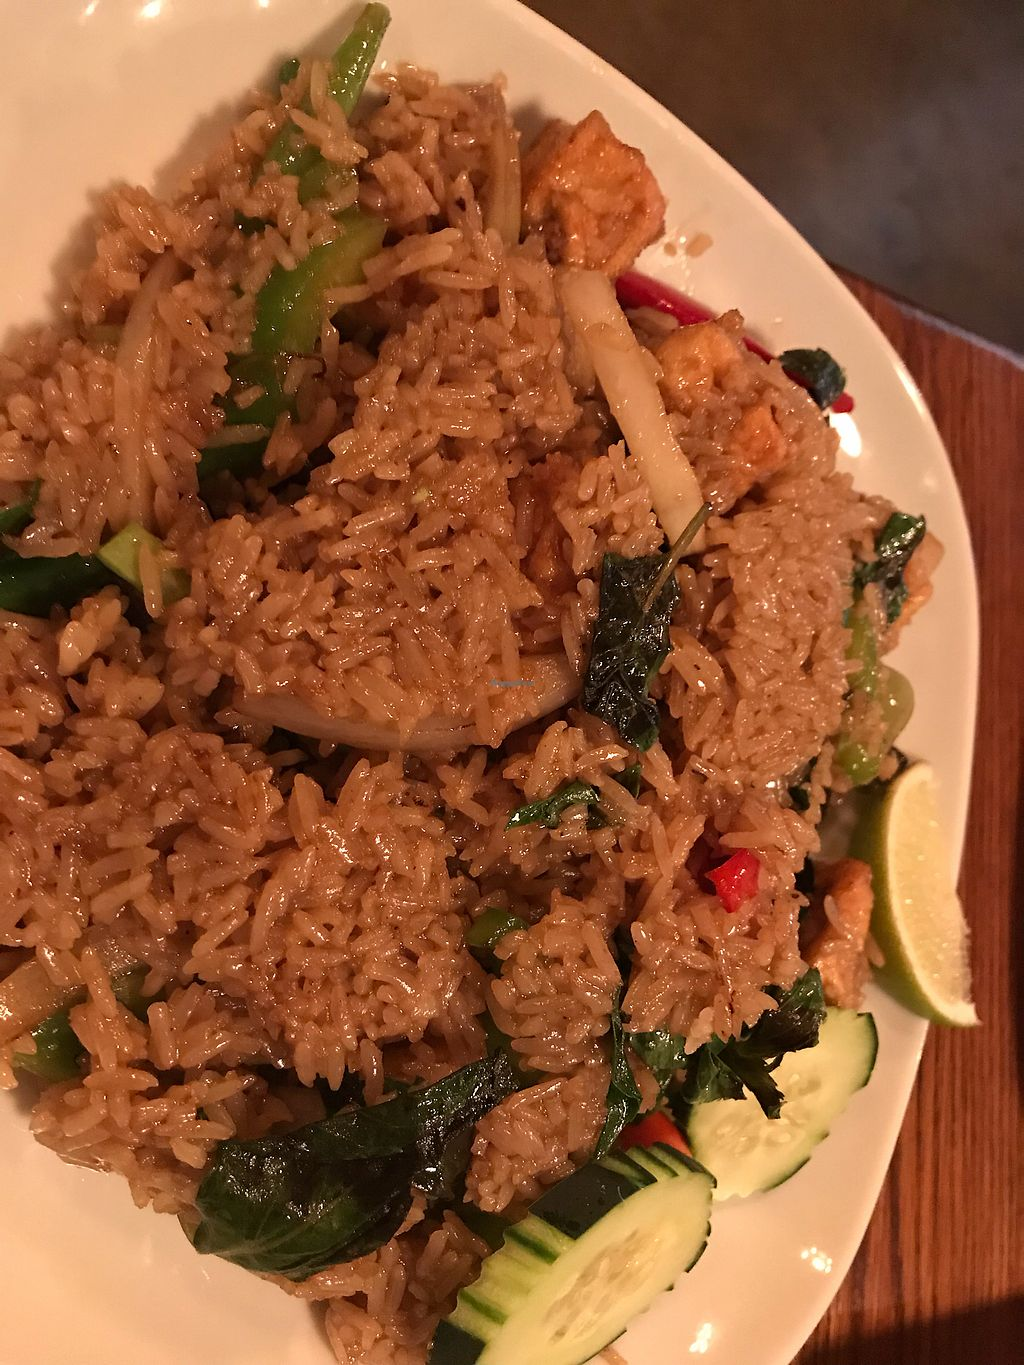 """Photo of 90 Degree Bangkok Cafe & Bar  by <a href=""""/members/profile/Arti"""">Arti</a> <br/>spicy basil fried rice (skipped egg for vegan) <br/> May 9, 2018  - <a href='/contact/abuse/image/108287/397273'>Report</a>"""